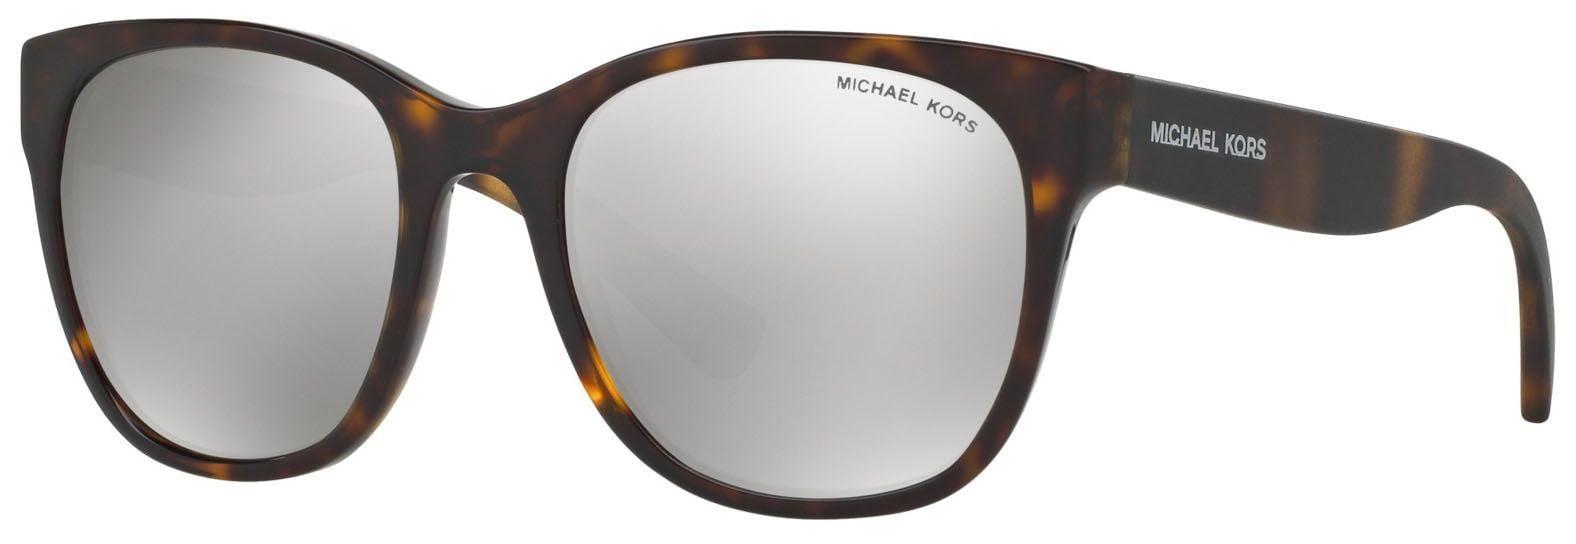 Michael Kors Spring Blossoms MK2038 32076G 53mm Sunglasses